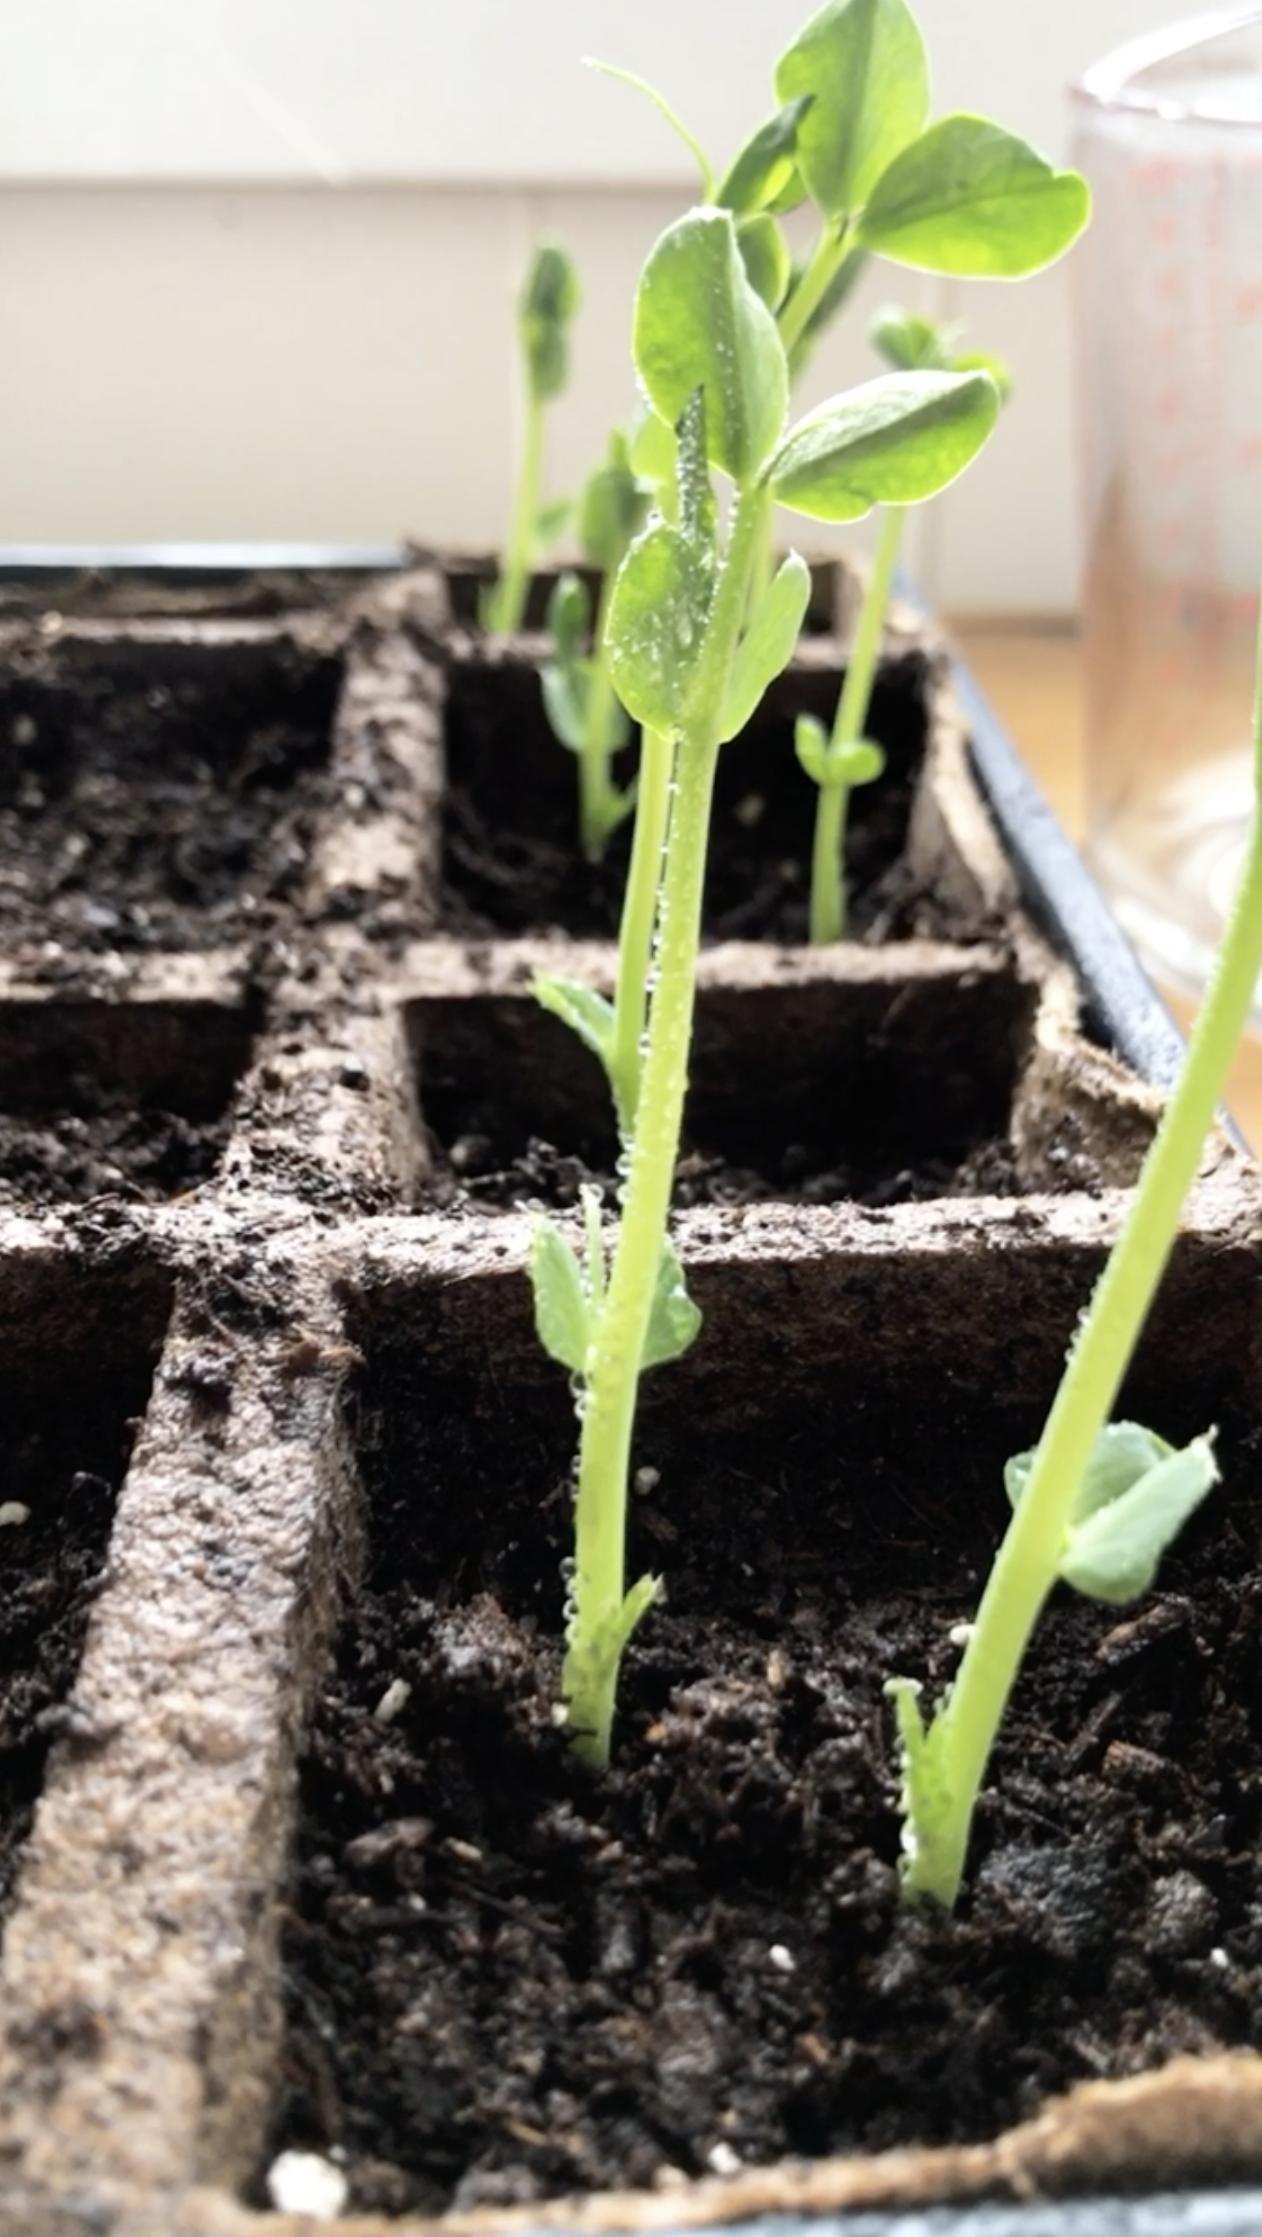 7 important lessons I learned from my first veggie garden in 2020. Tips for planting your first successful vegetable and herb garden. Everything you need to know before starting your first veggie garden - what NOT to do + tips and tricks I learned along the way!